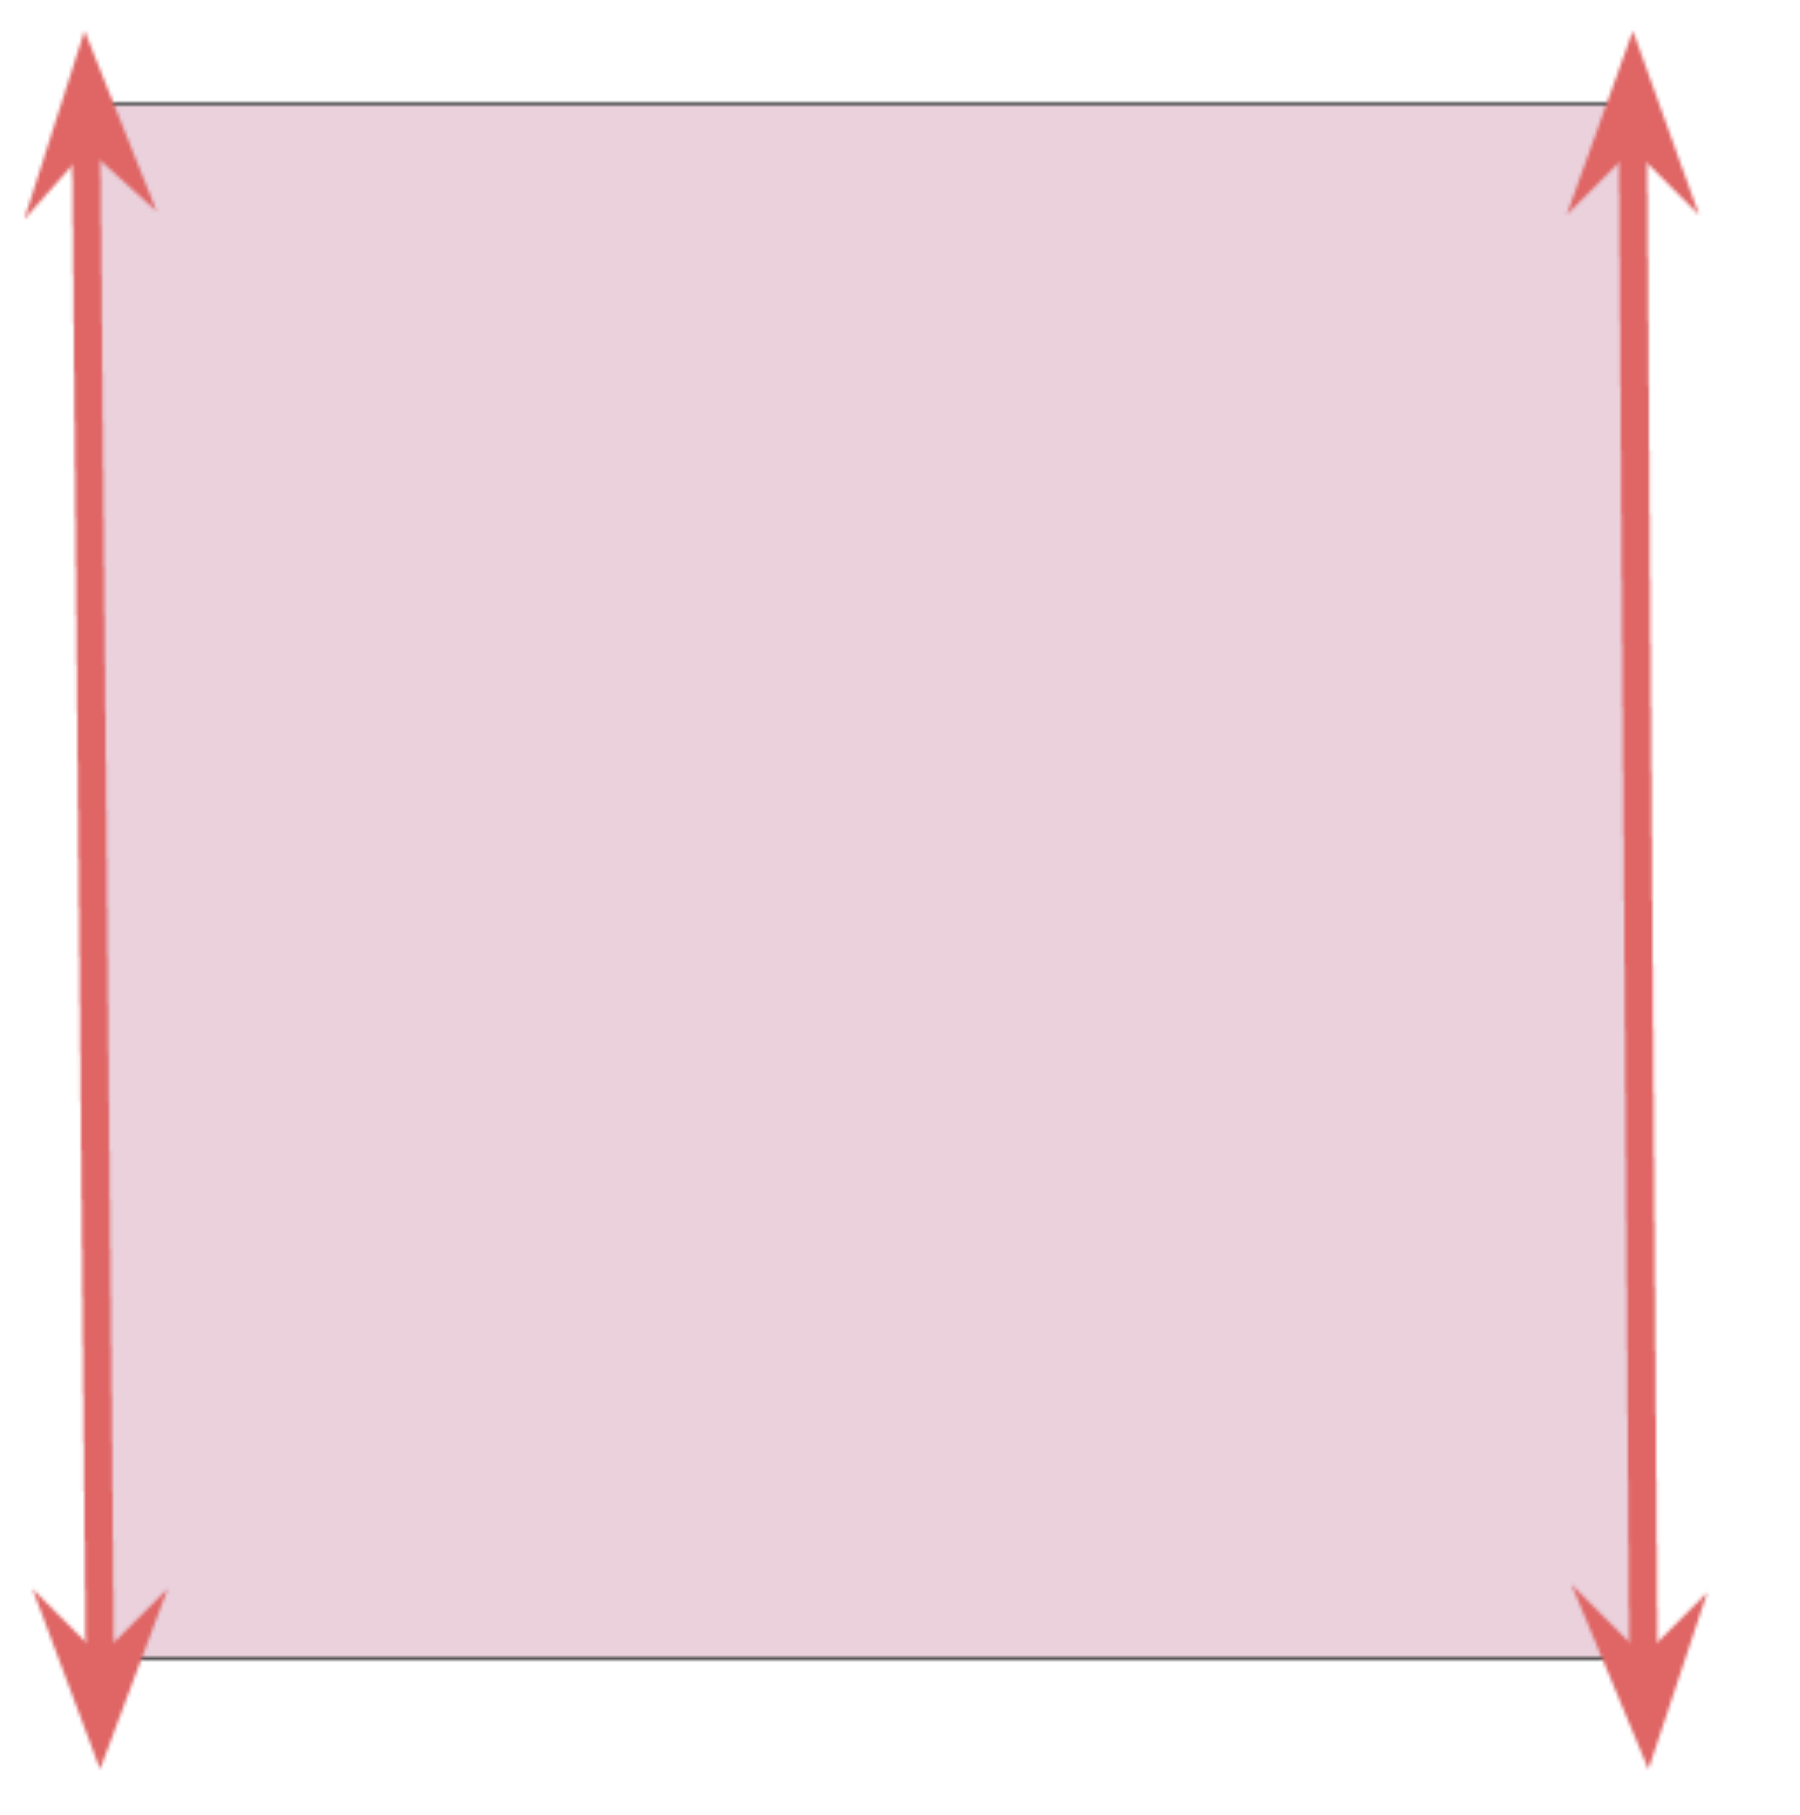 the other pair of sides are also parallel